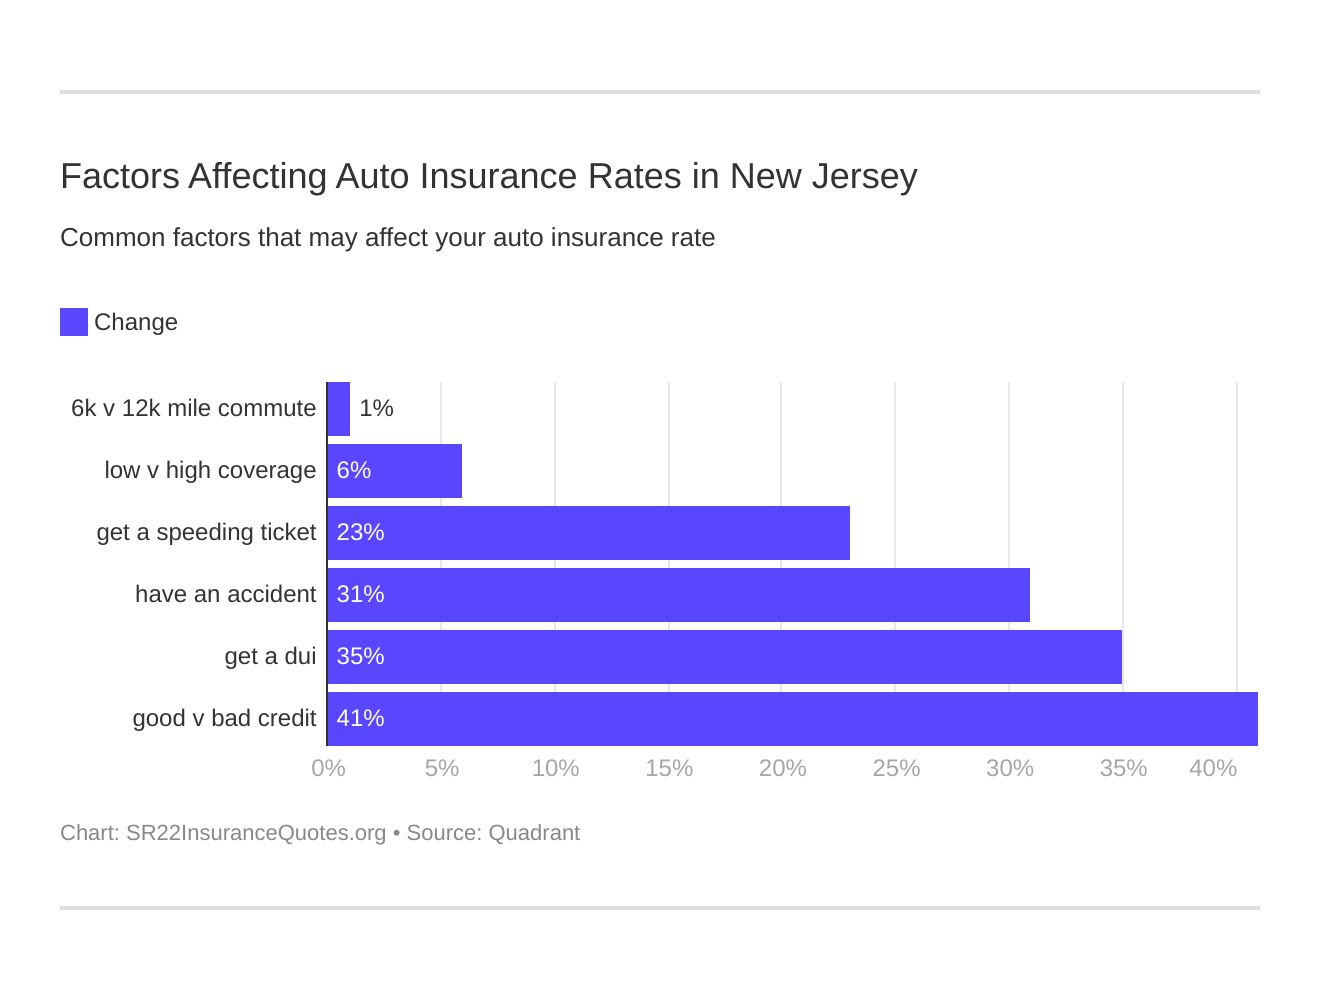 Factors Affecting Auto Insurance Rates in New Jersey